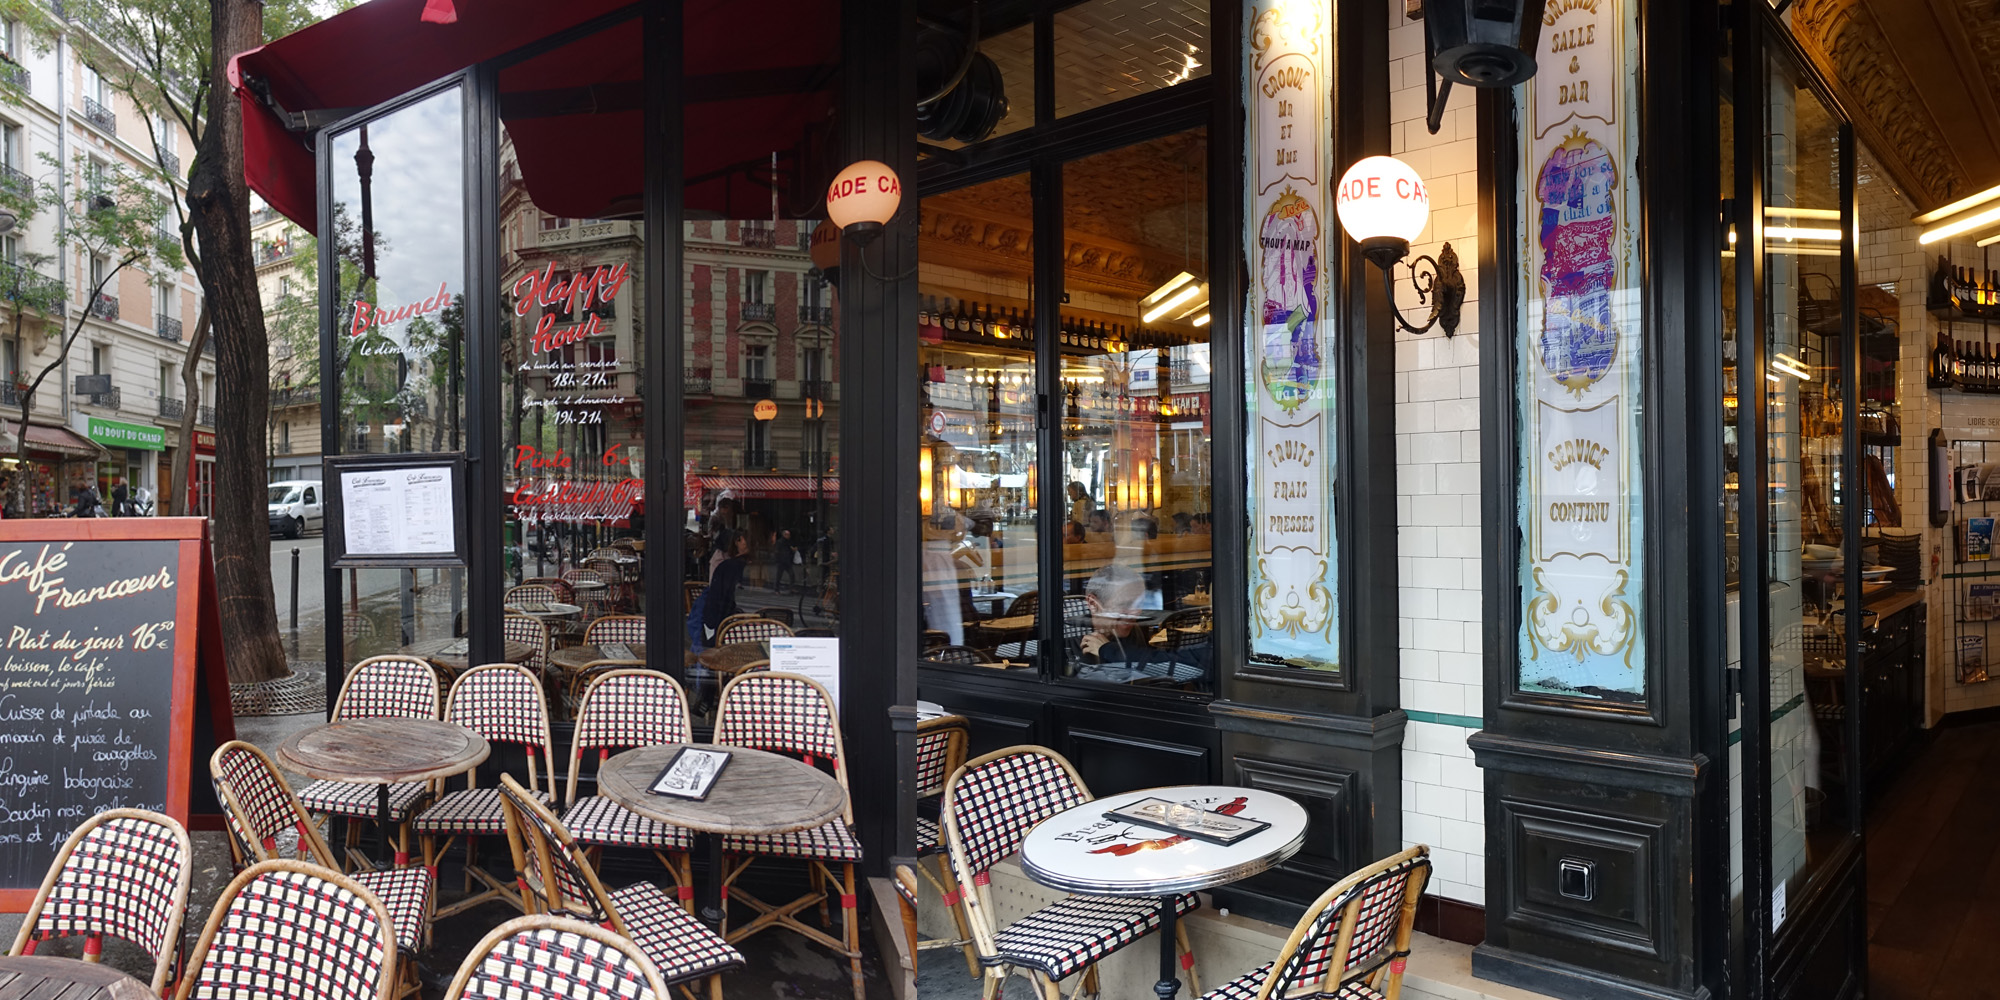 Brunch Le Francoeur (75018 Paris)